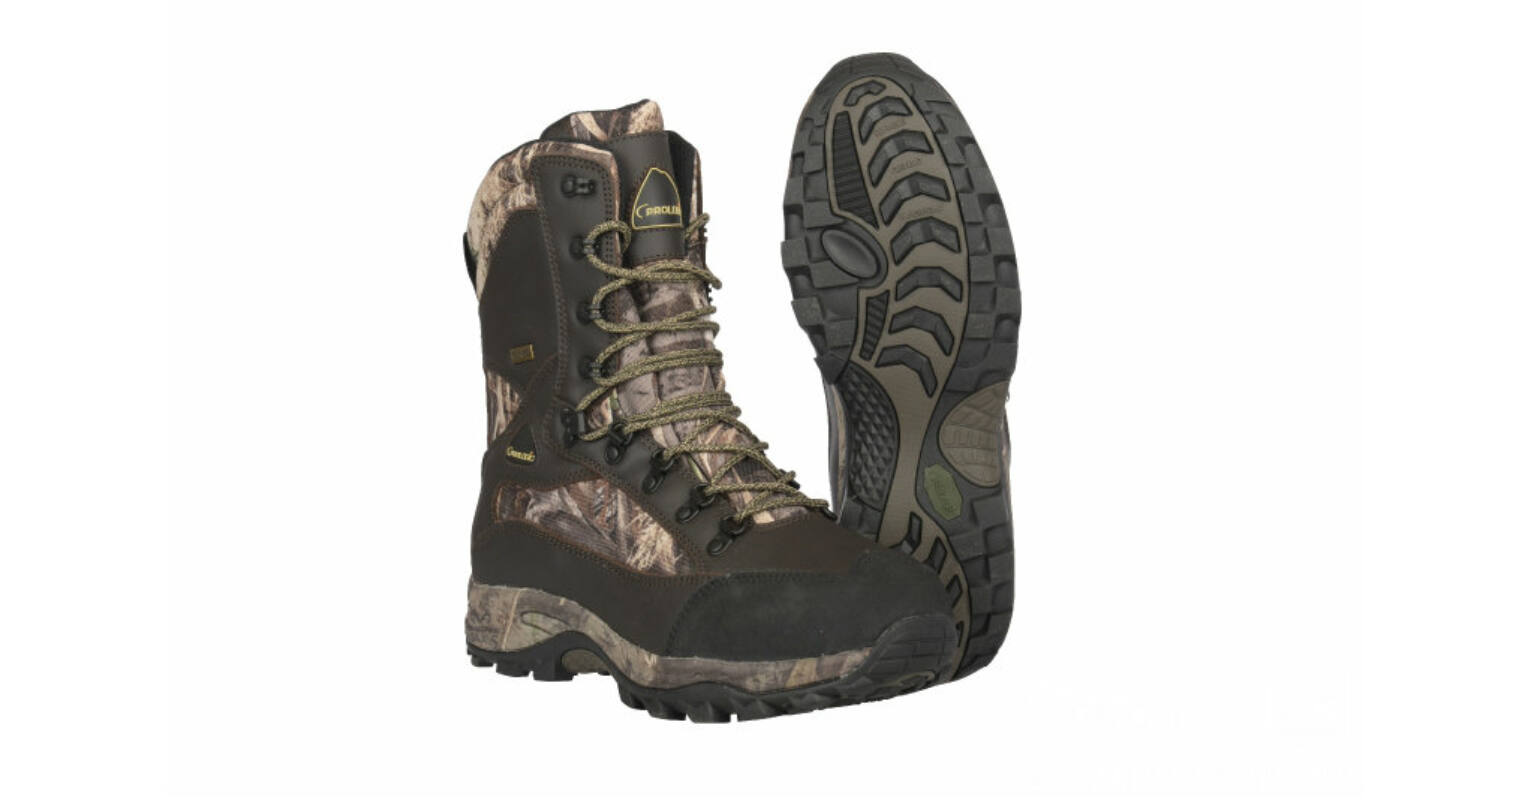 Prologic Max5 HP Polar Zone Boots téli bakancs Carpmania